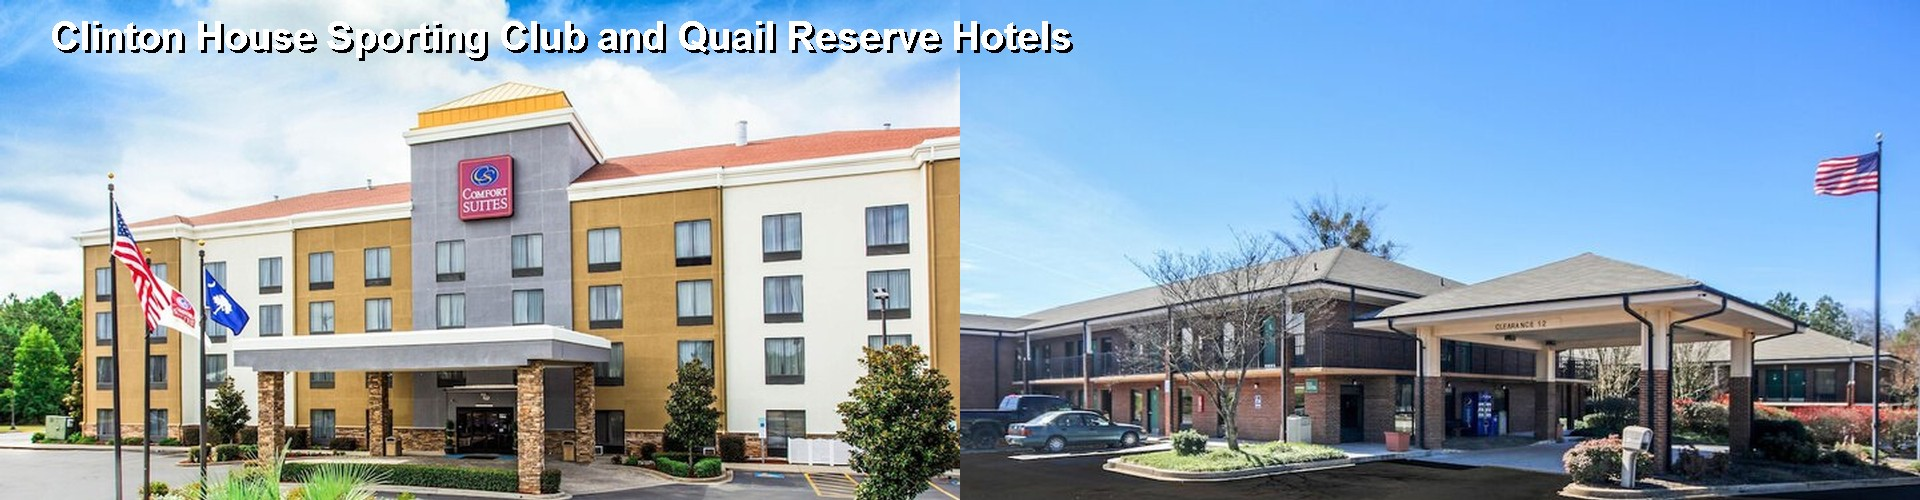 5 Best Hotels near Clinton House Sporting Club and Quail Reserve